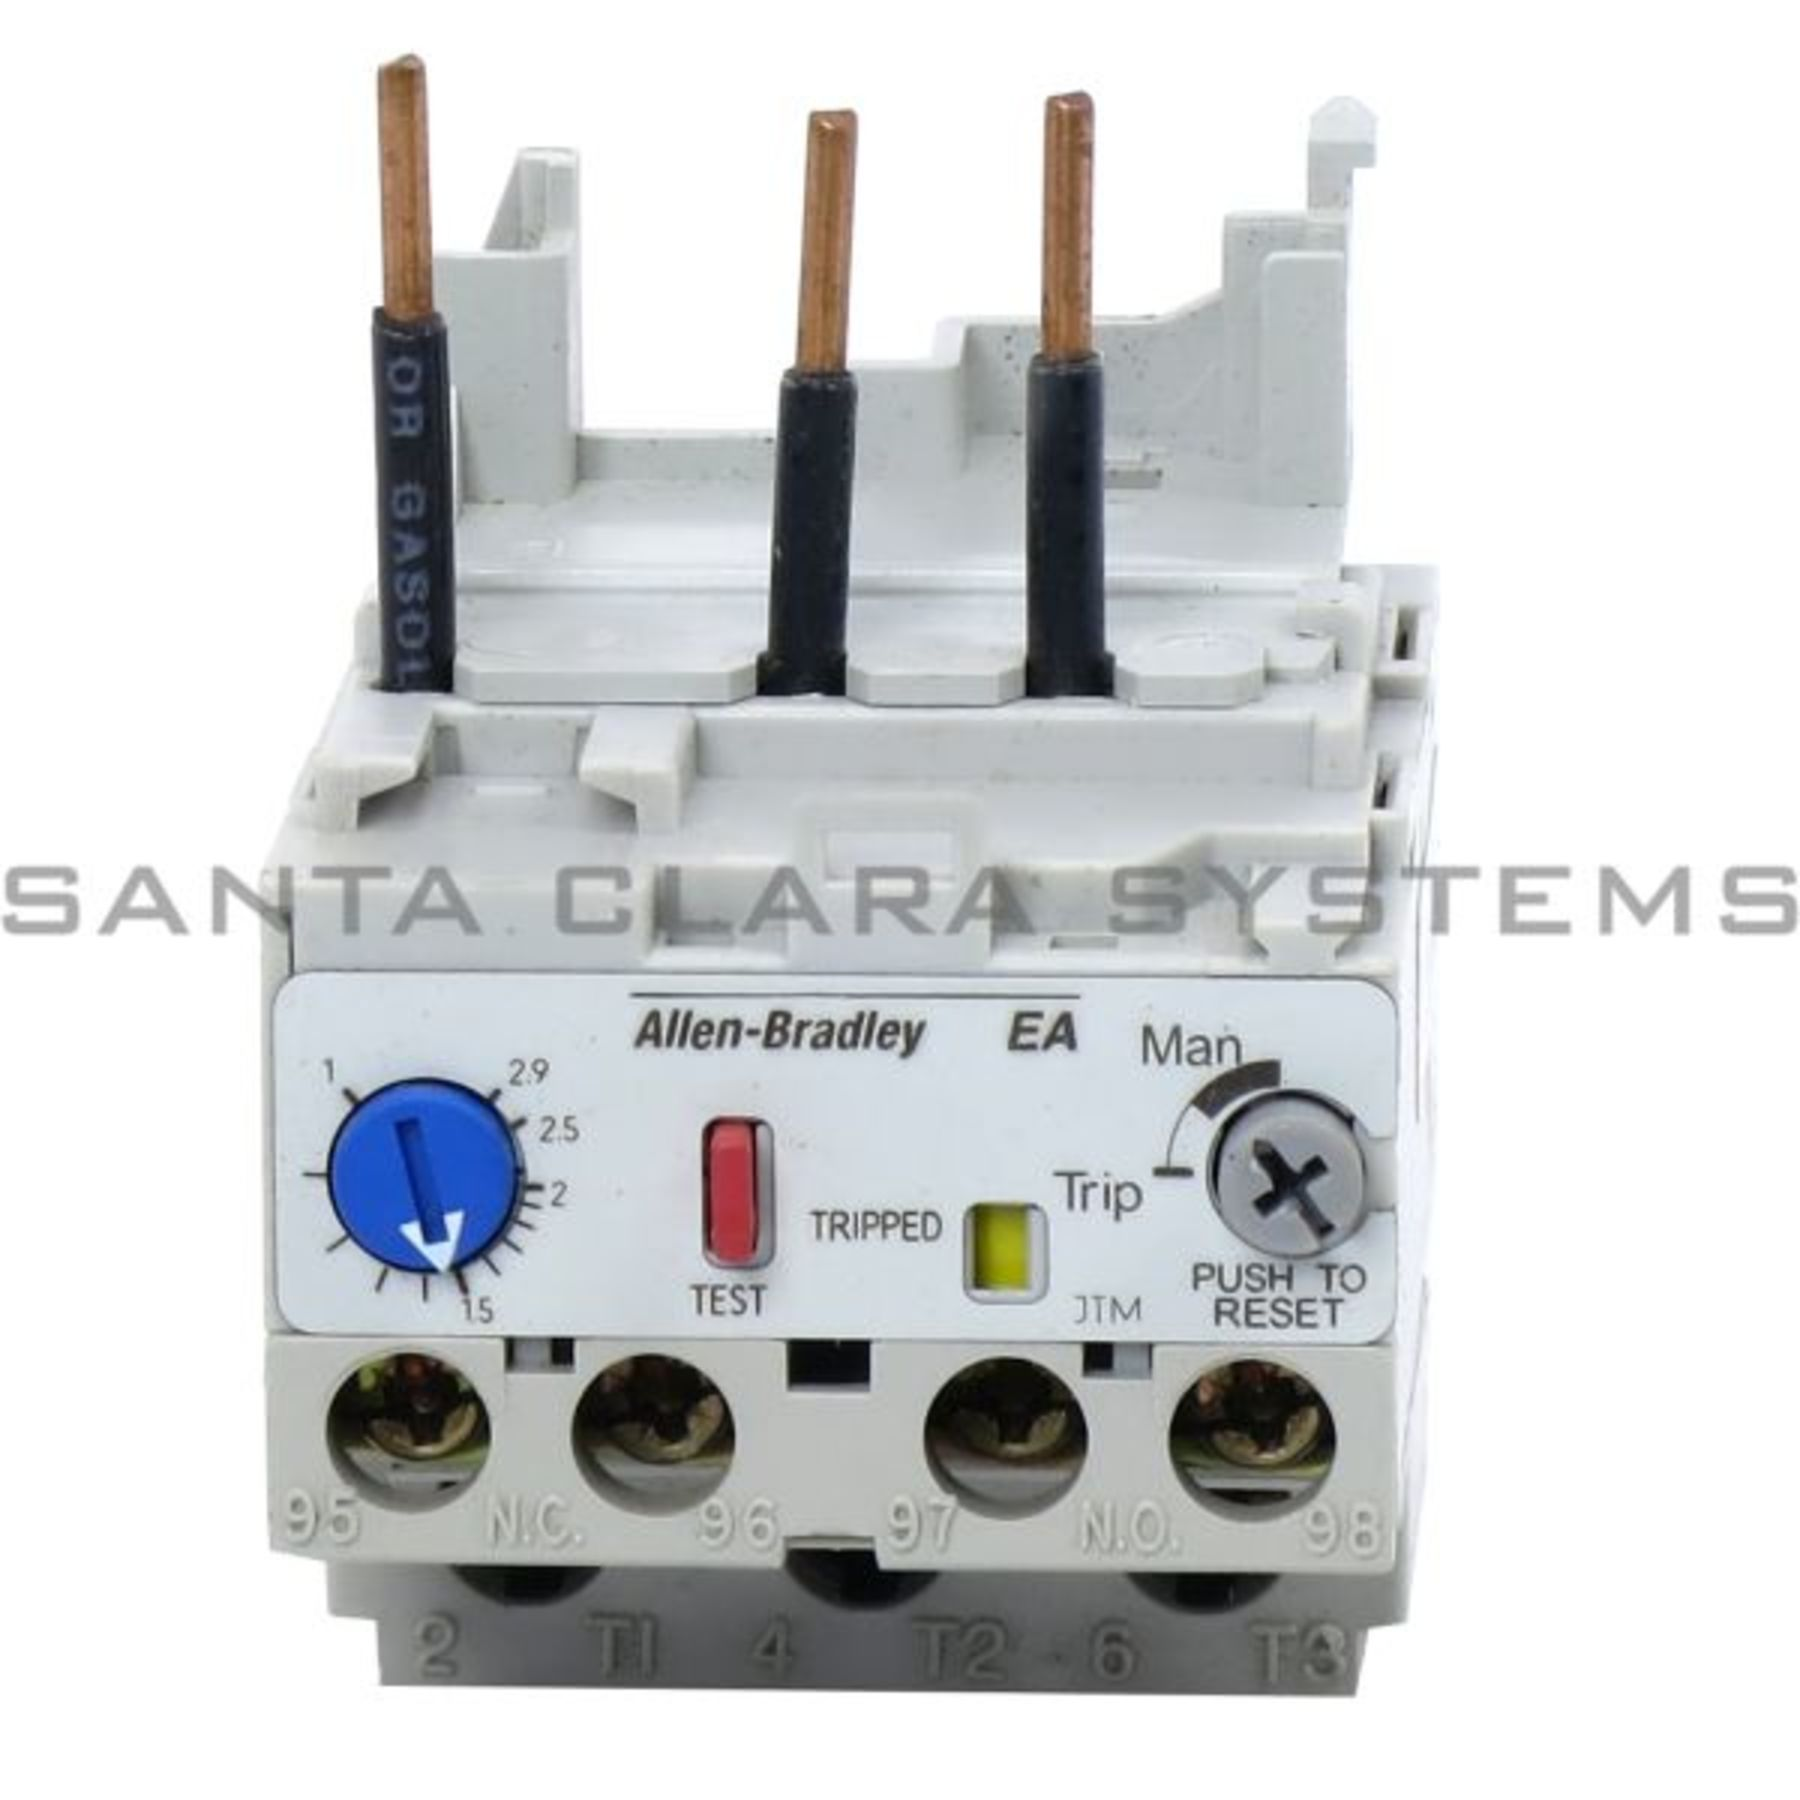 193 Ea1db Allen Bradley In Stock And Ready To Ship Santa Clara Systems Abb Solid State Overload Relay Product Image